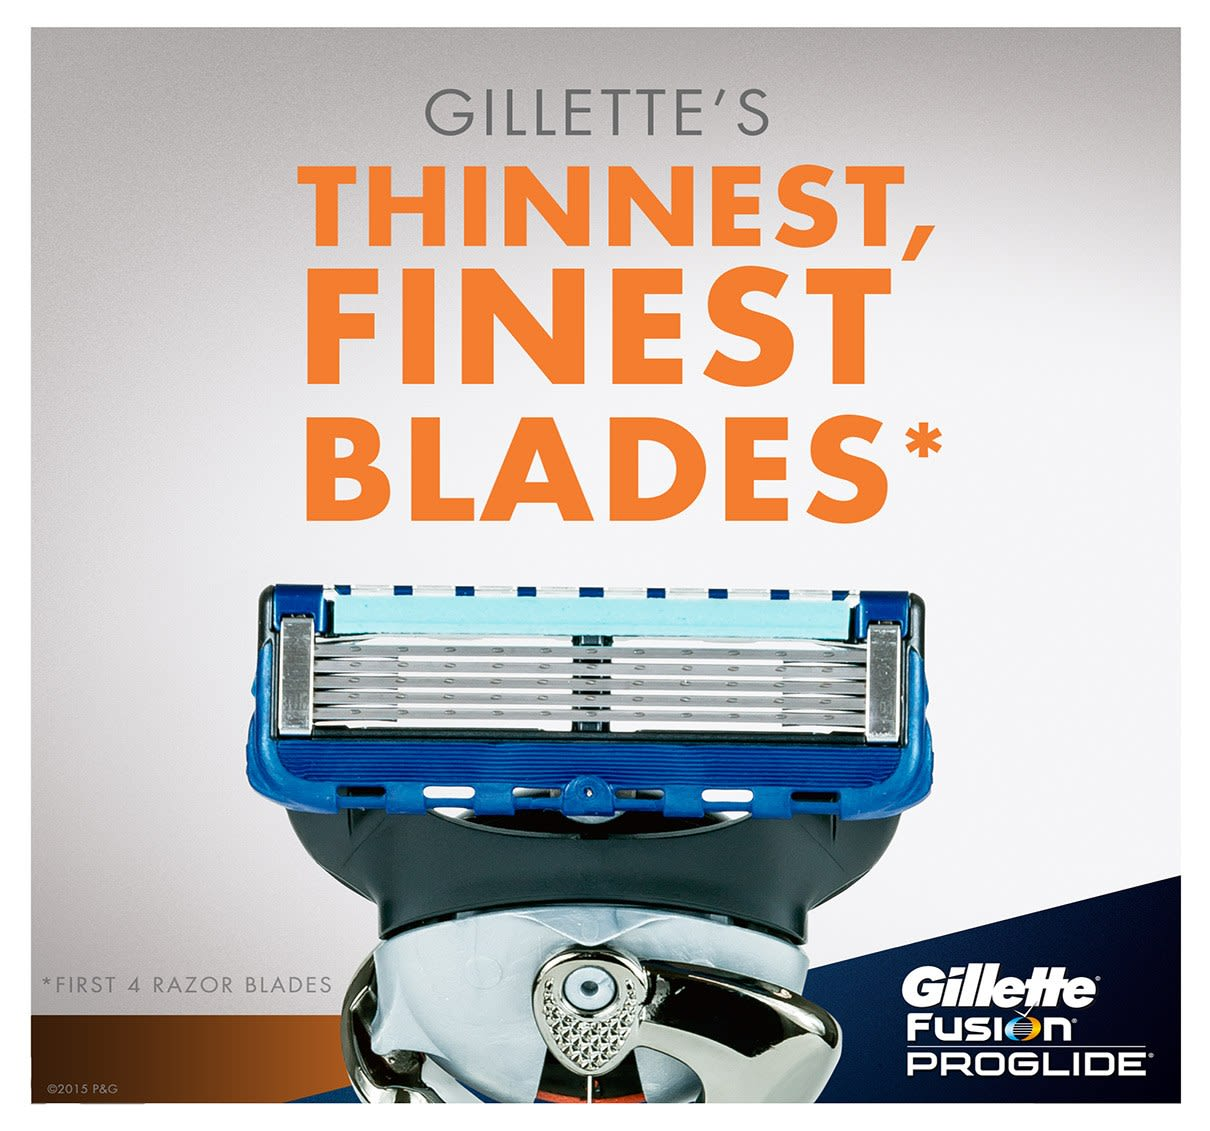 Gillette Fusion Proglide Manual Razor Manual Guide